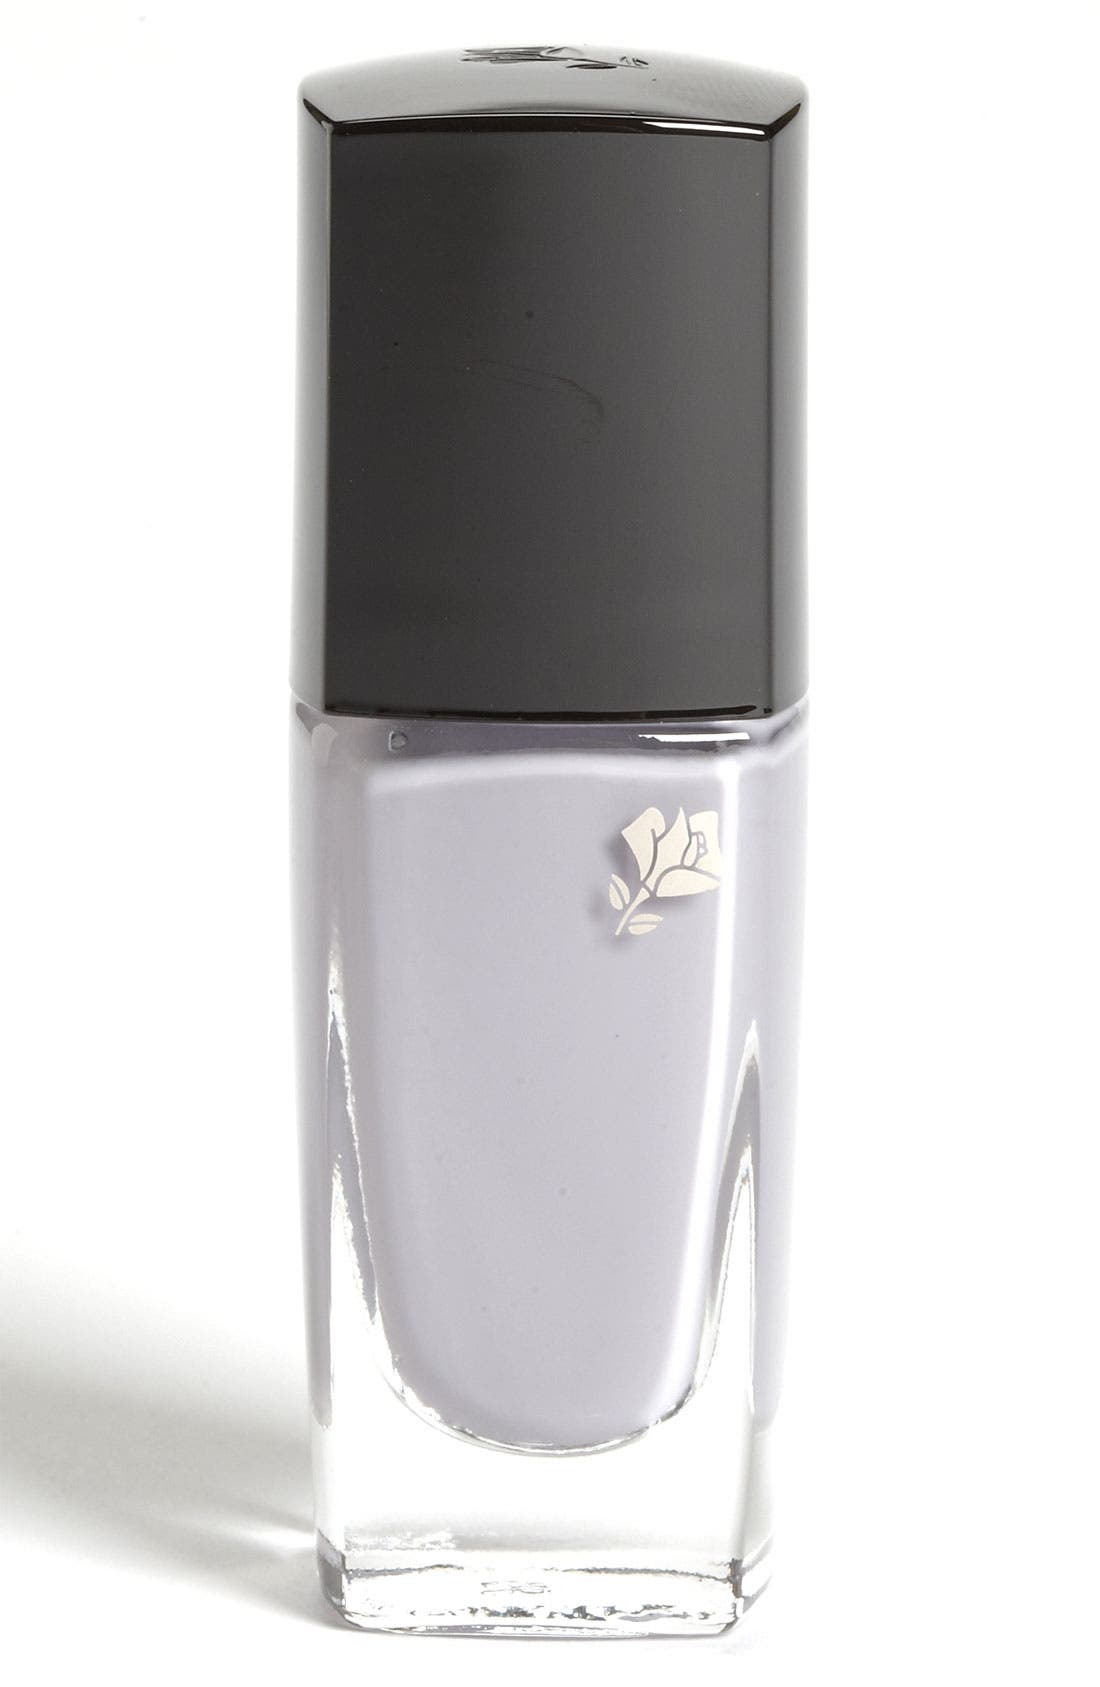 Lancôme Vernis In Love Nail Polish